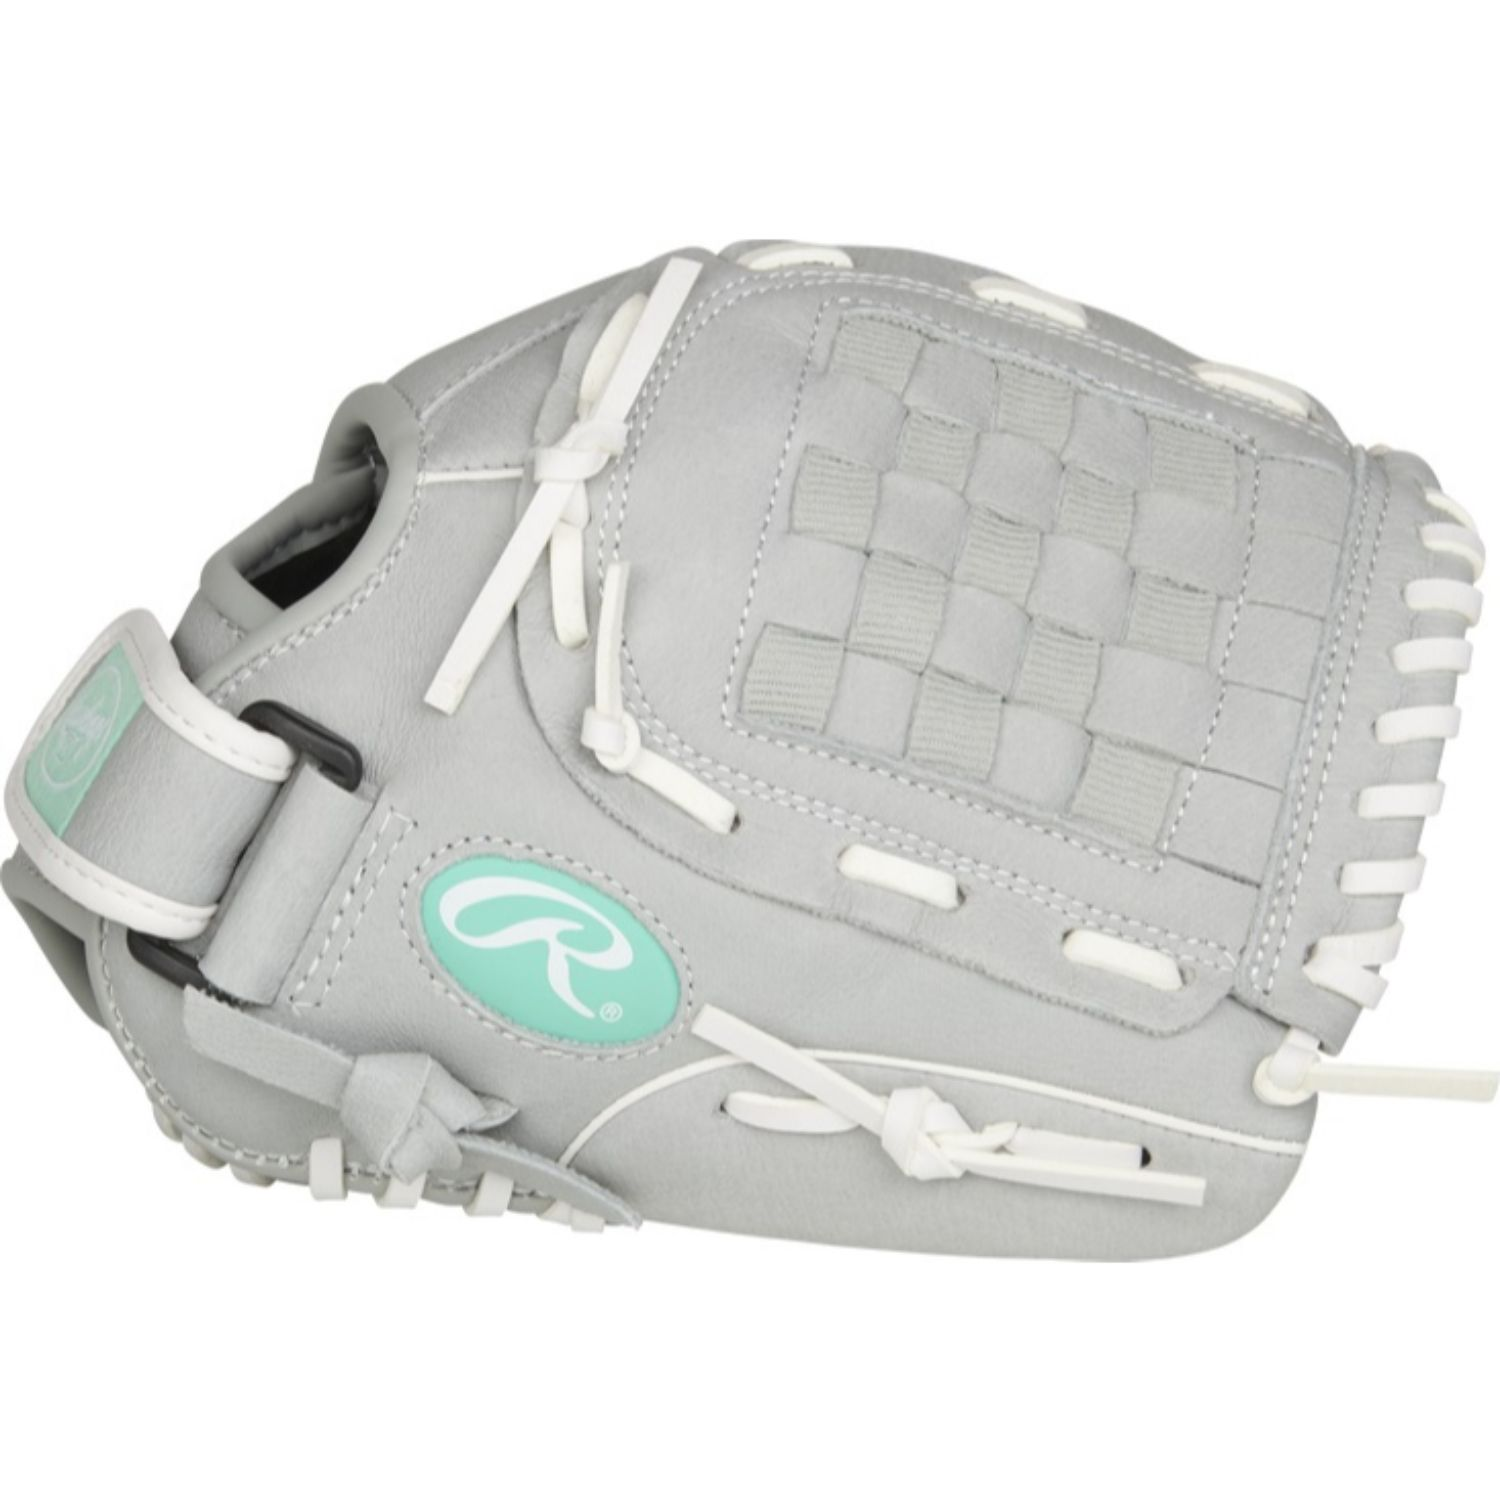 Rawlings Sure Catch 11 in Youth Infield Pitchers Glove LH